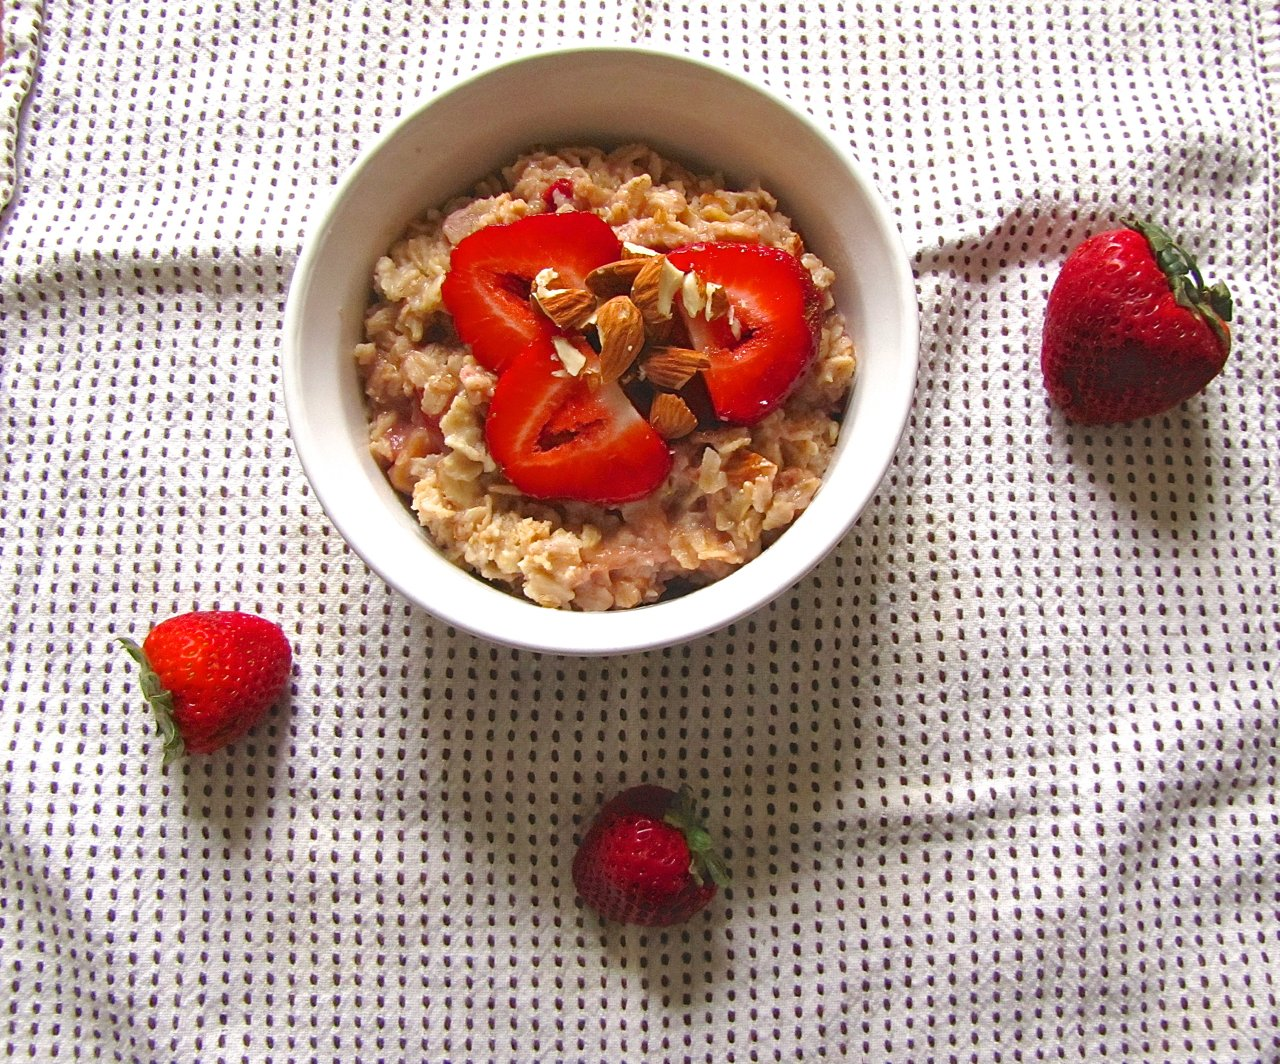 Skillet Roasted Strawberry-Banana Oatmeal